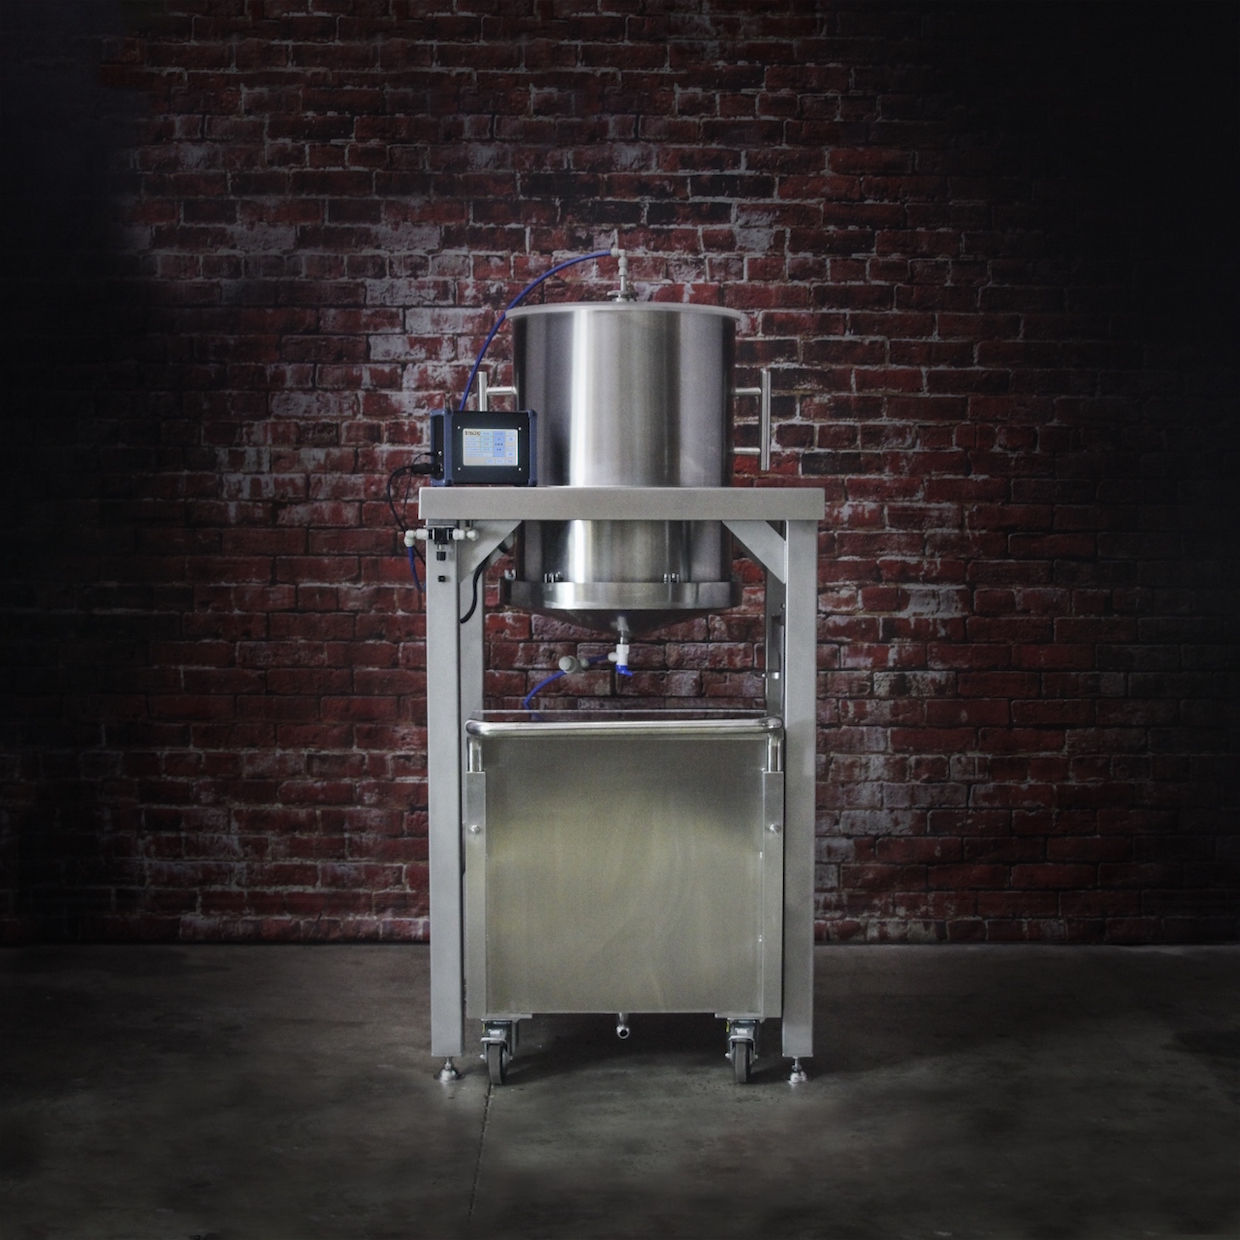 Brew Bomb Drops With Slow Drip Cold Brewer On A Commercial